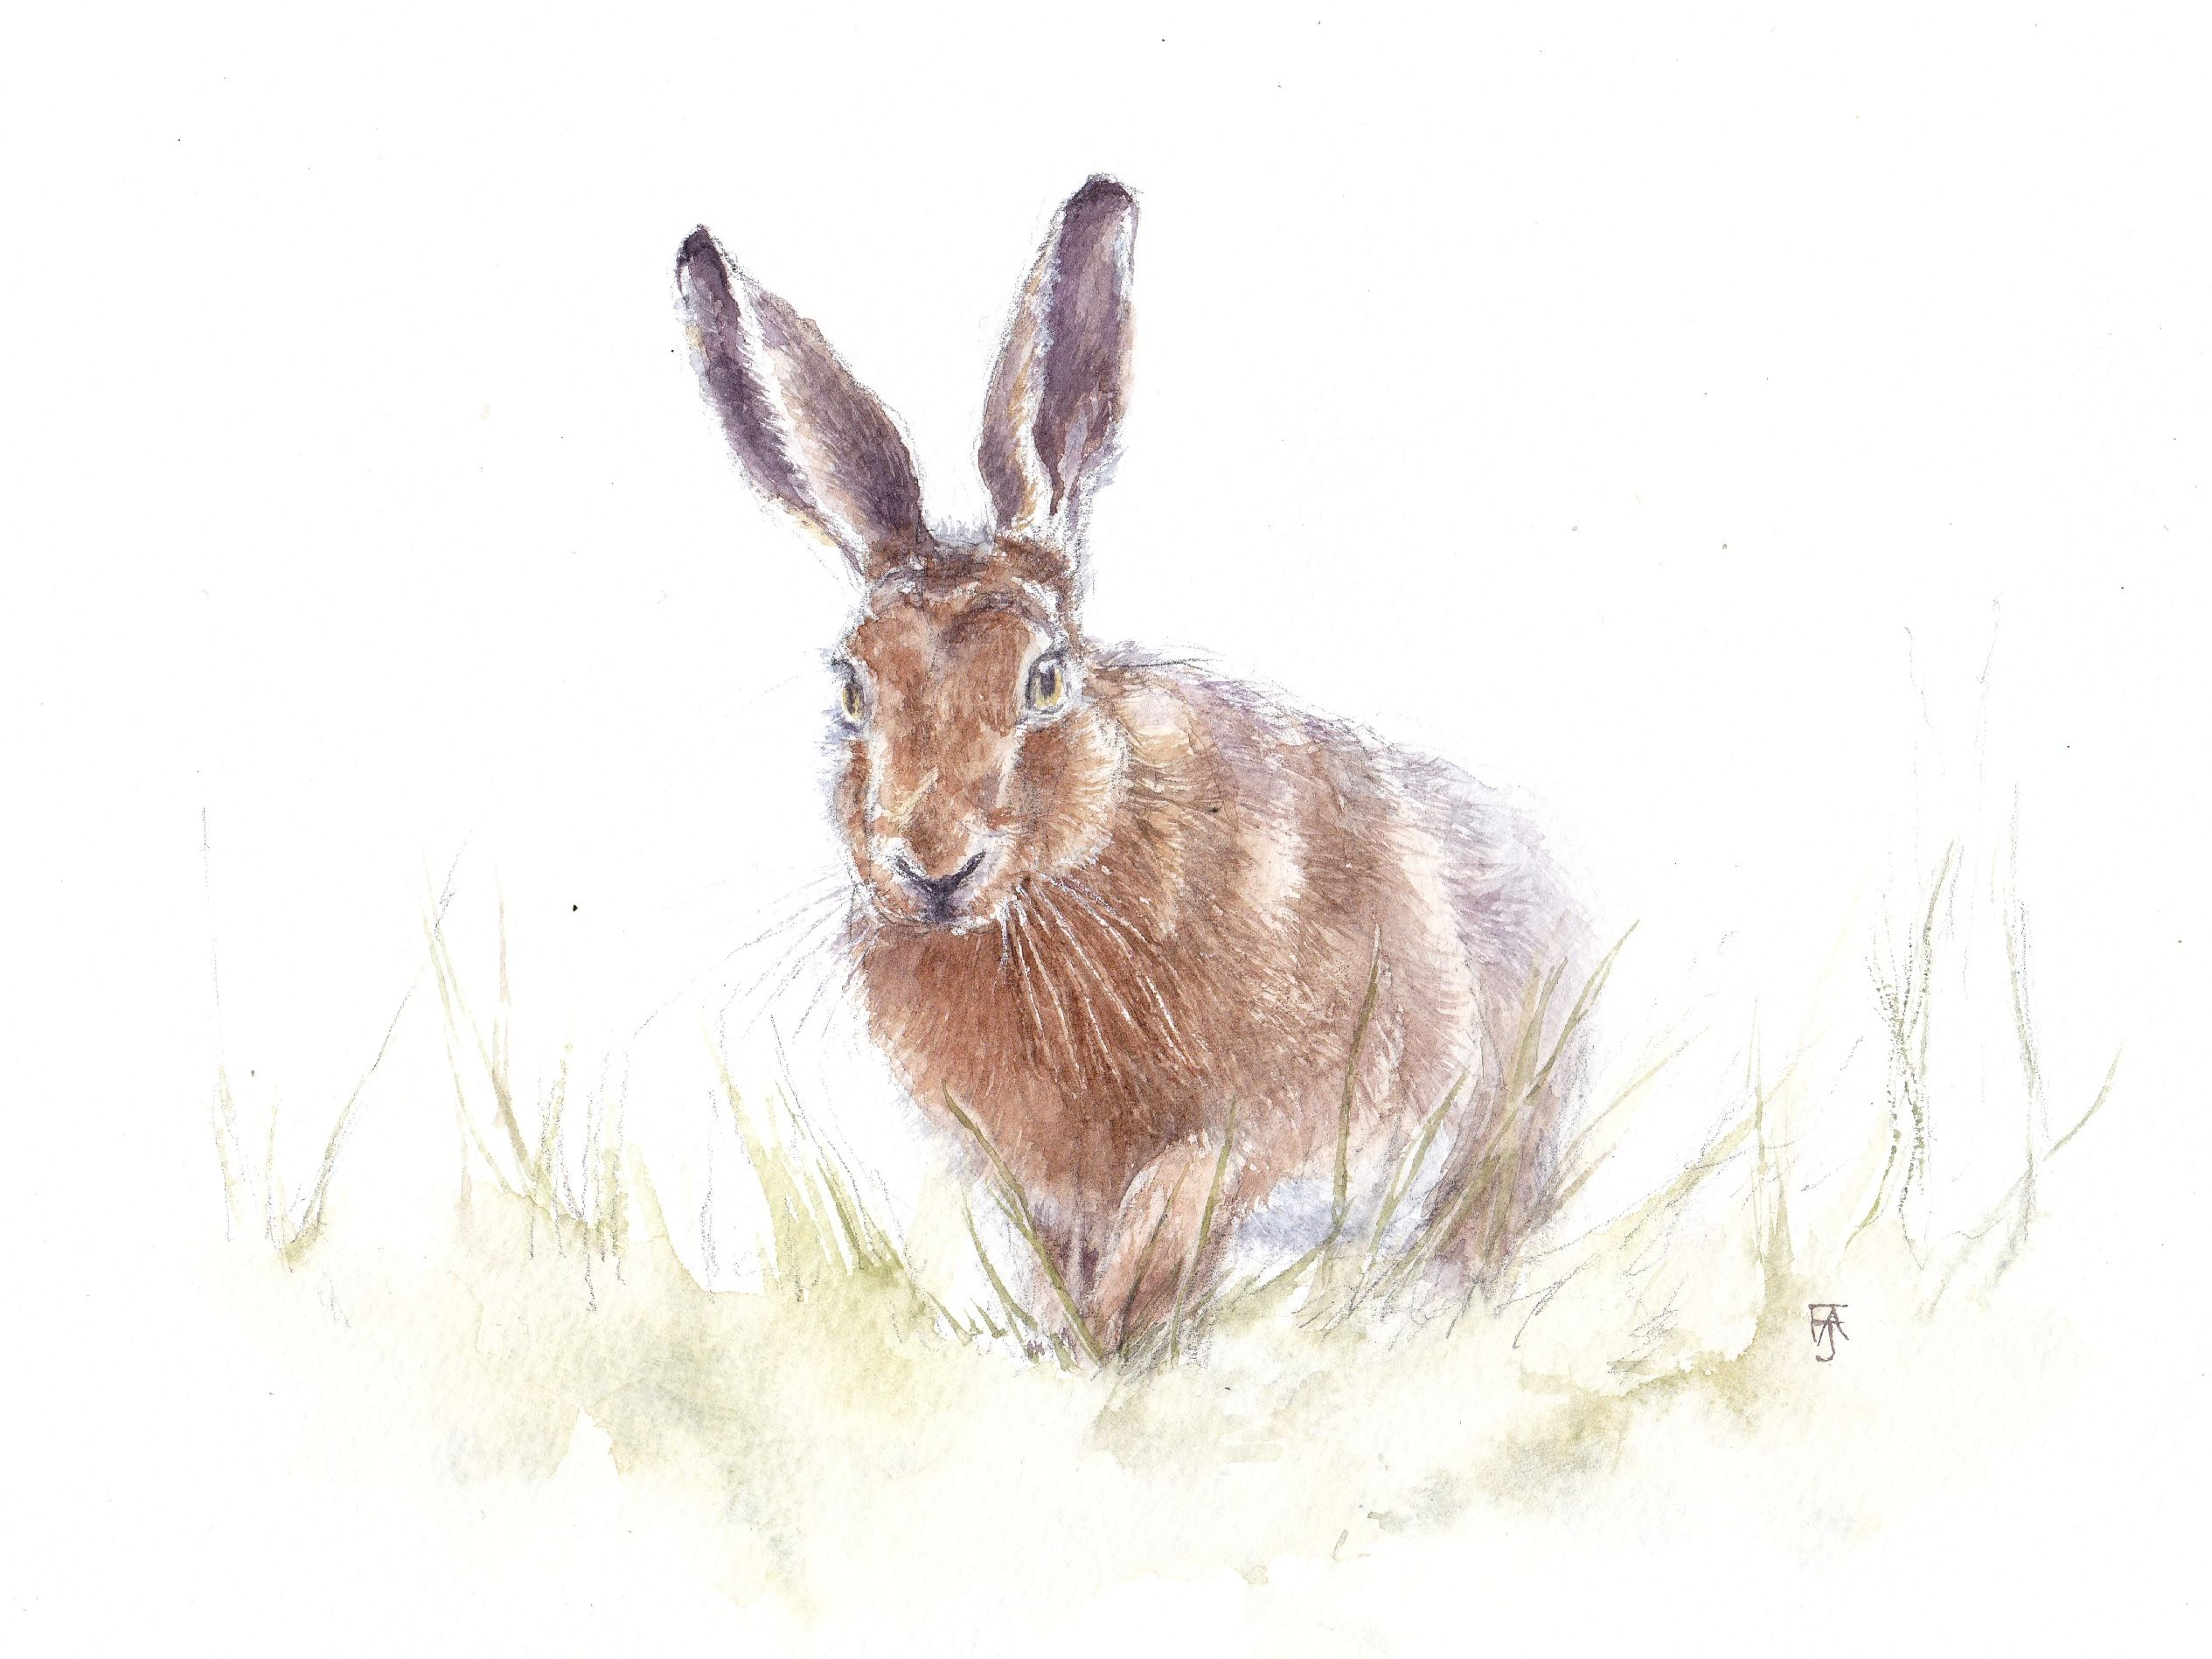 Hare - proceeding with caution copy